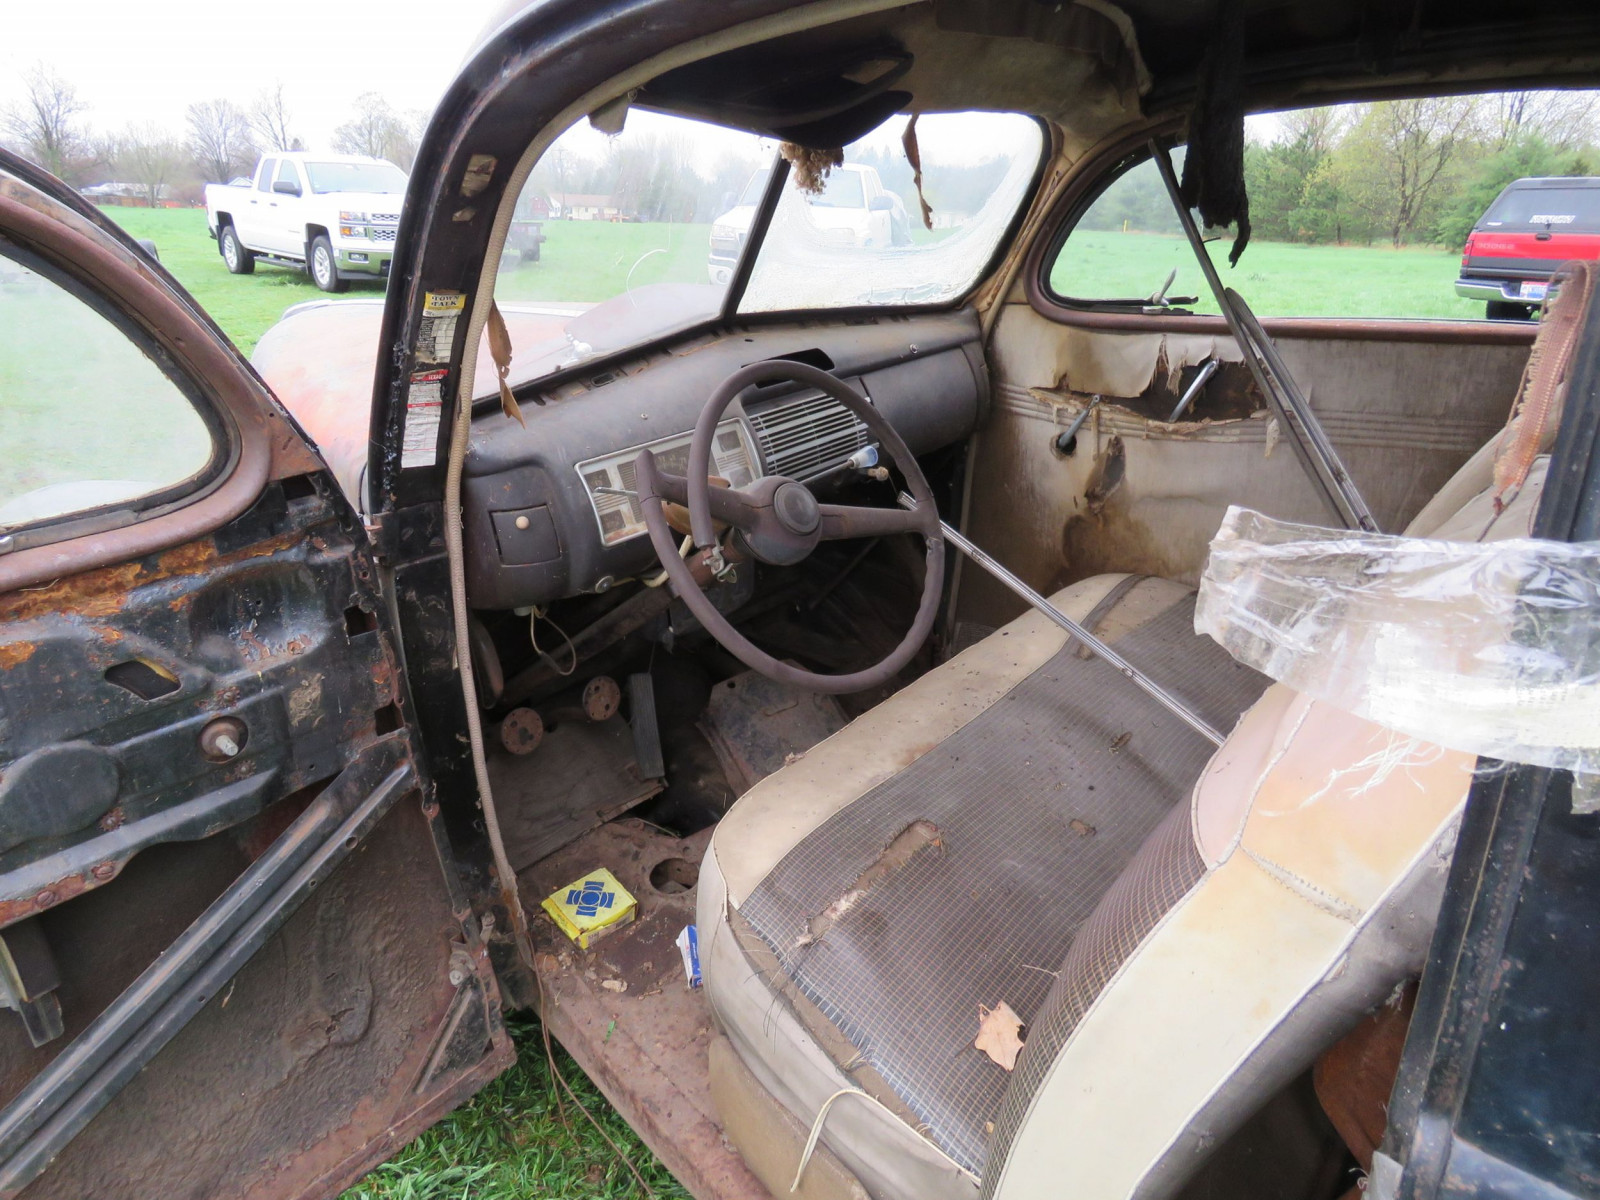 1940 Ford 2dr Sedan for Rod or Restore - Image 7